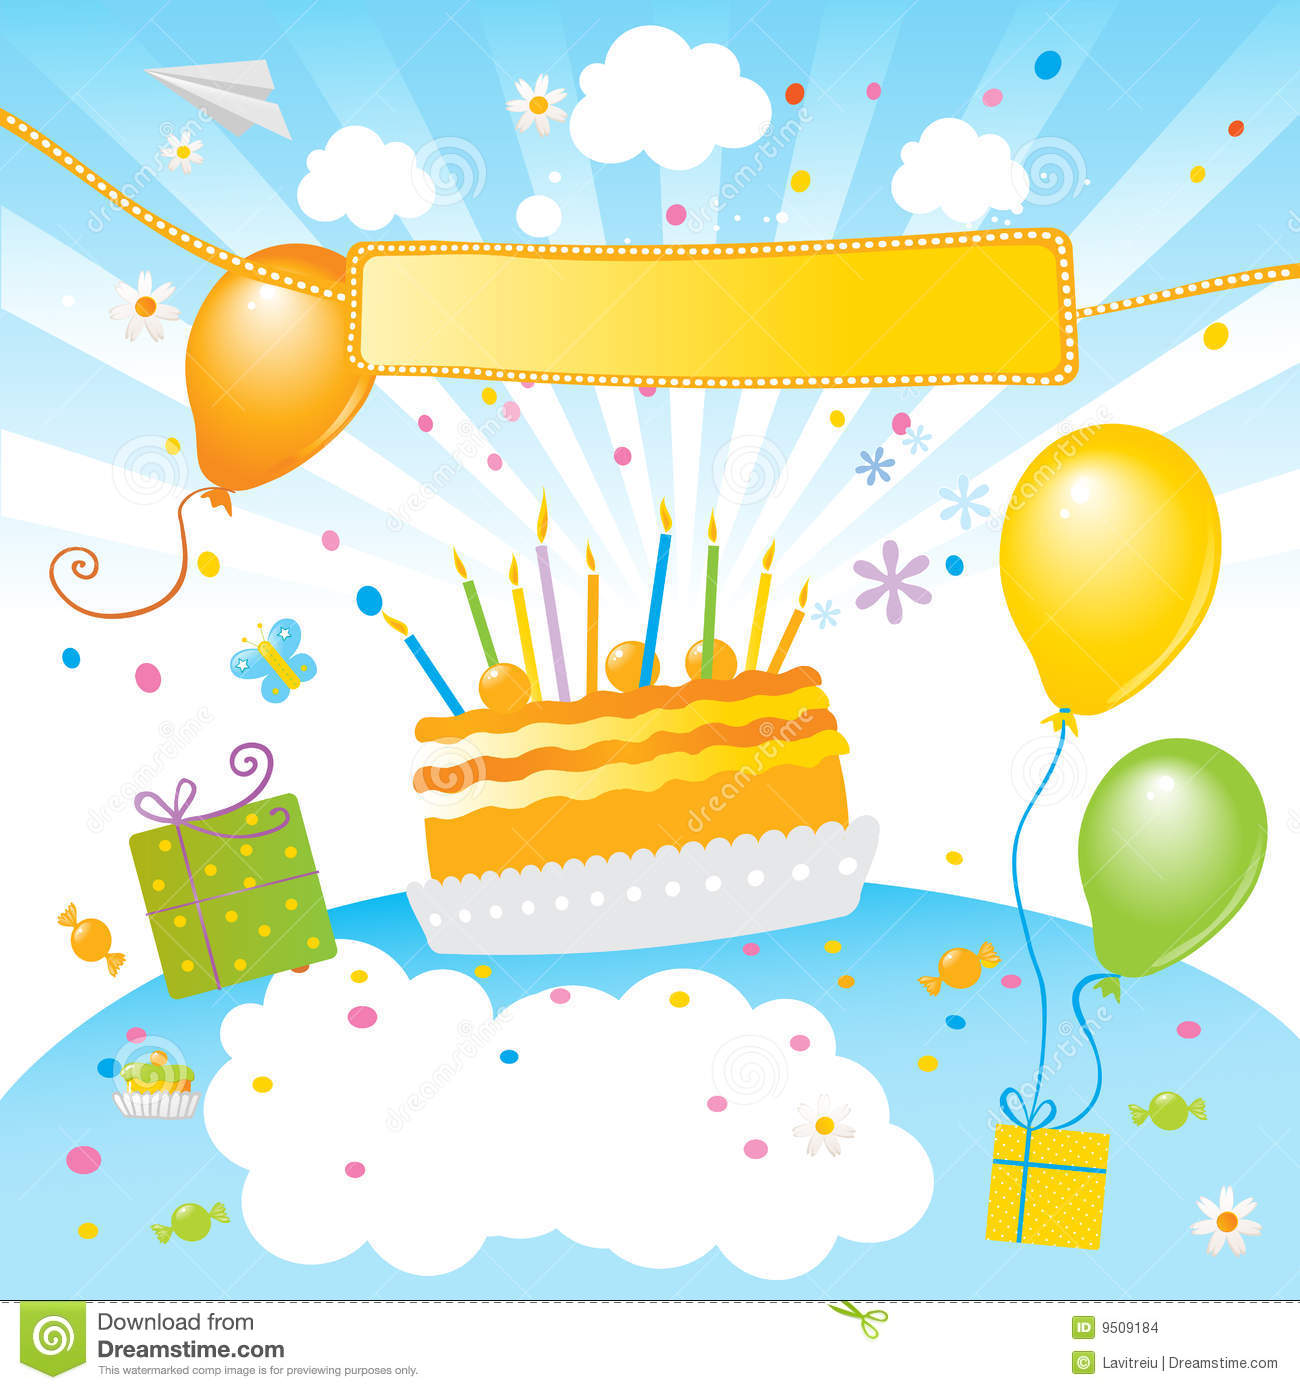 Kids party vector illustration. Birthday cake, balloons and banner ...